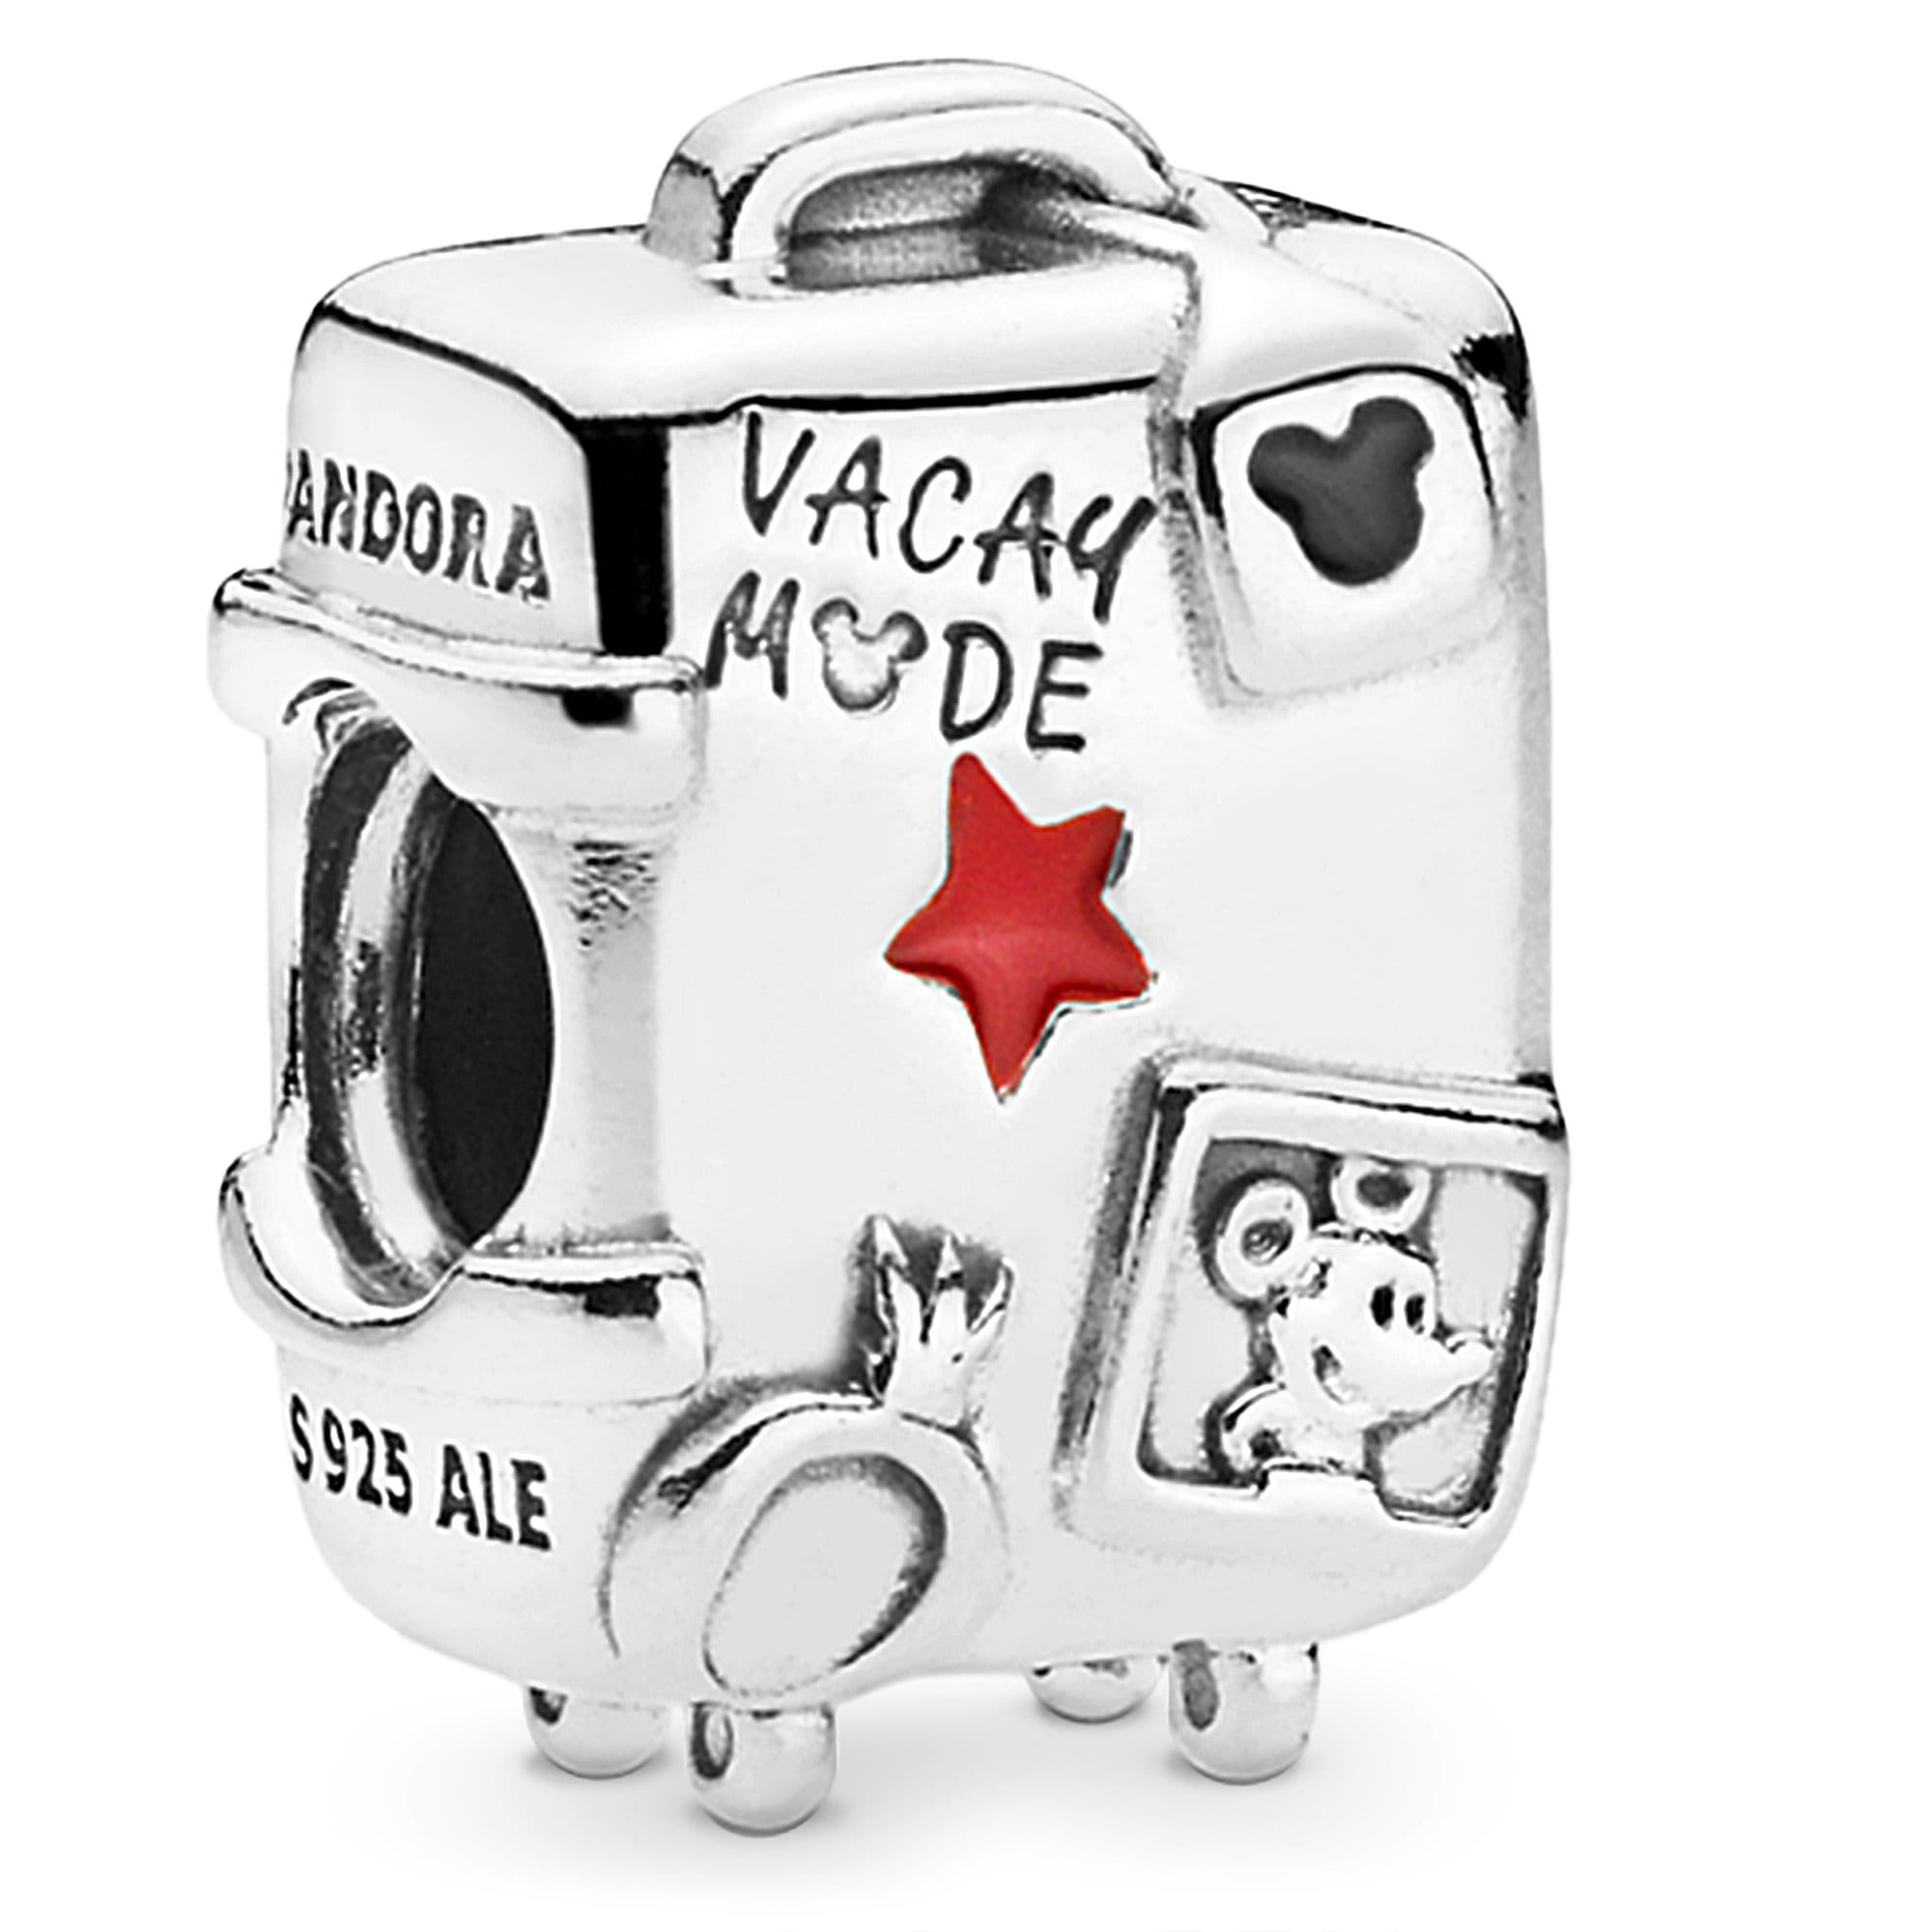 59129e03b Mickey and Minnie Mouse ''Vacay Mode'' Suitcase Charm by Pandora Jewelry is  here now